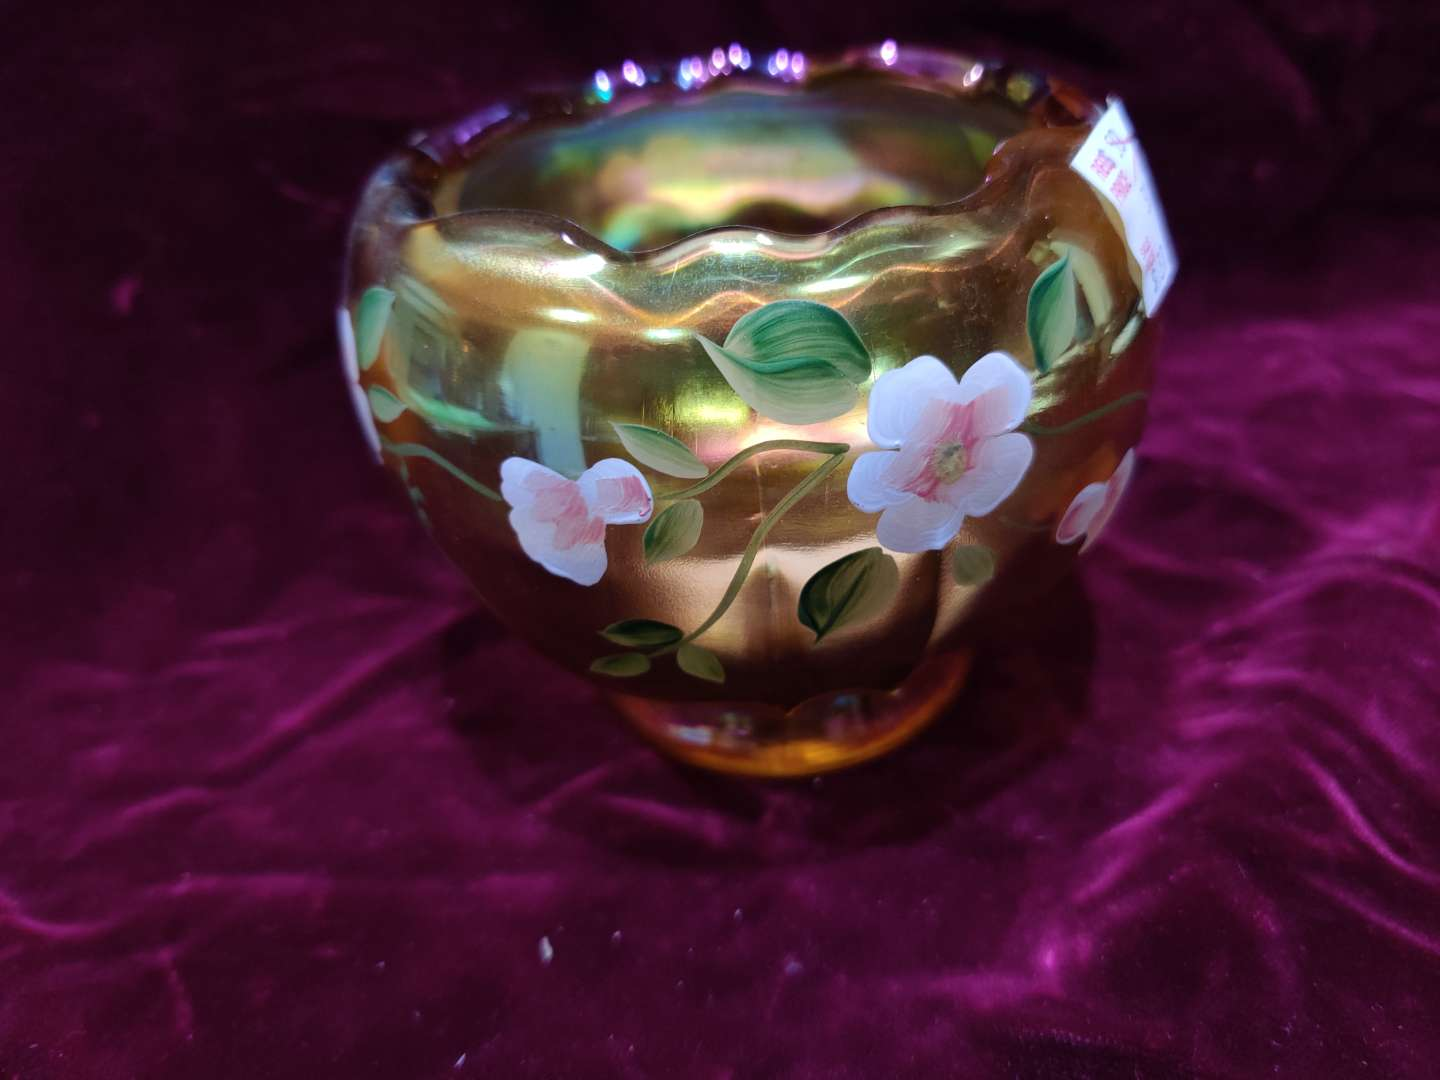 # 64 Fenton hand-painted Rose bowl limited edition 135 of 500 great condition 3.5 in tall